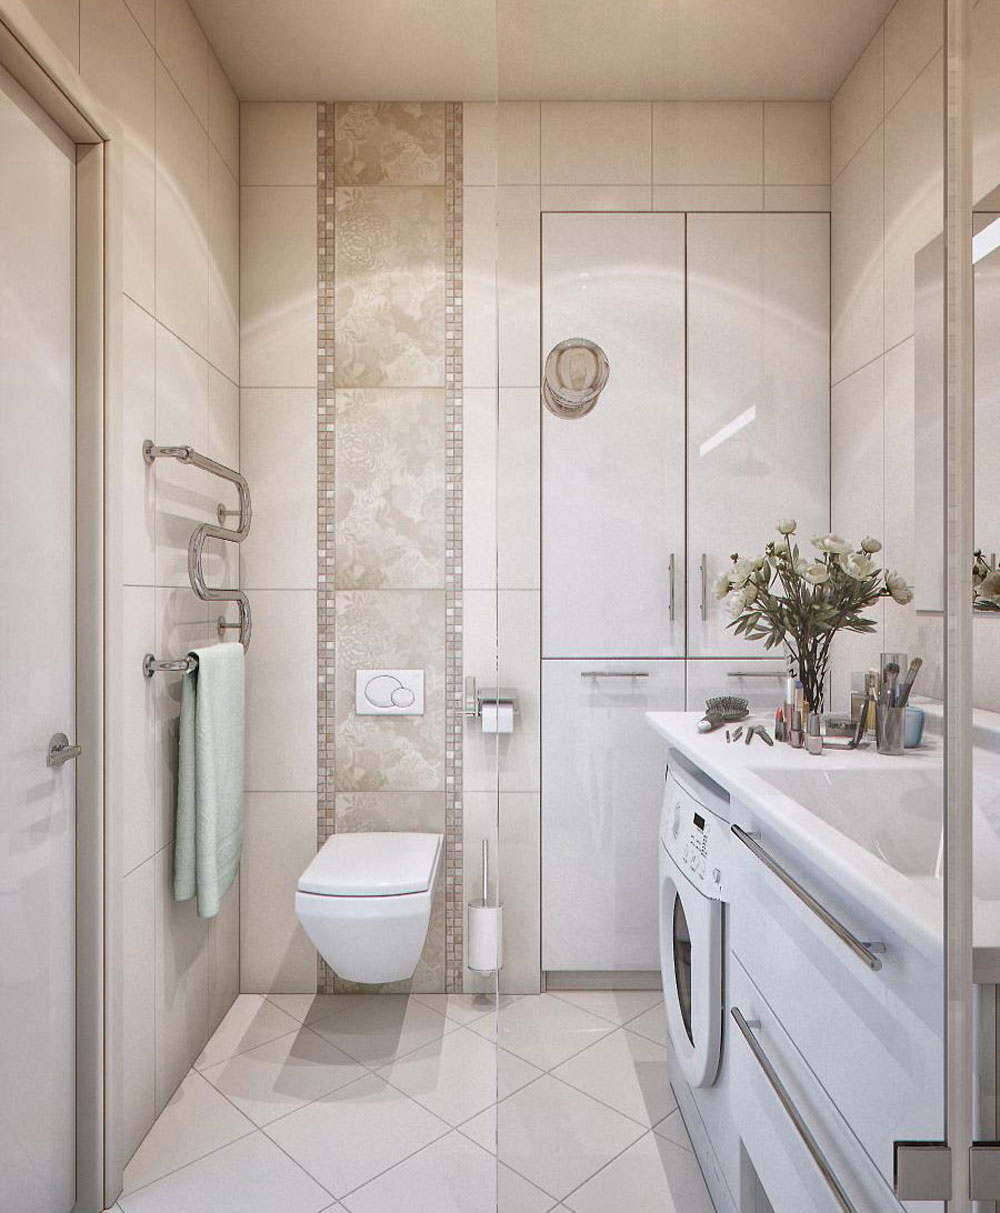 Designing-a-small-bathroom-ideas-and-tips-2 Designing-a-small-bathroom - ideas and tips